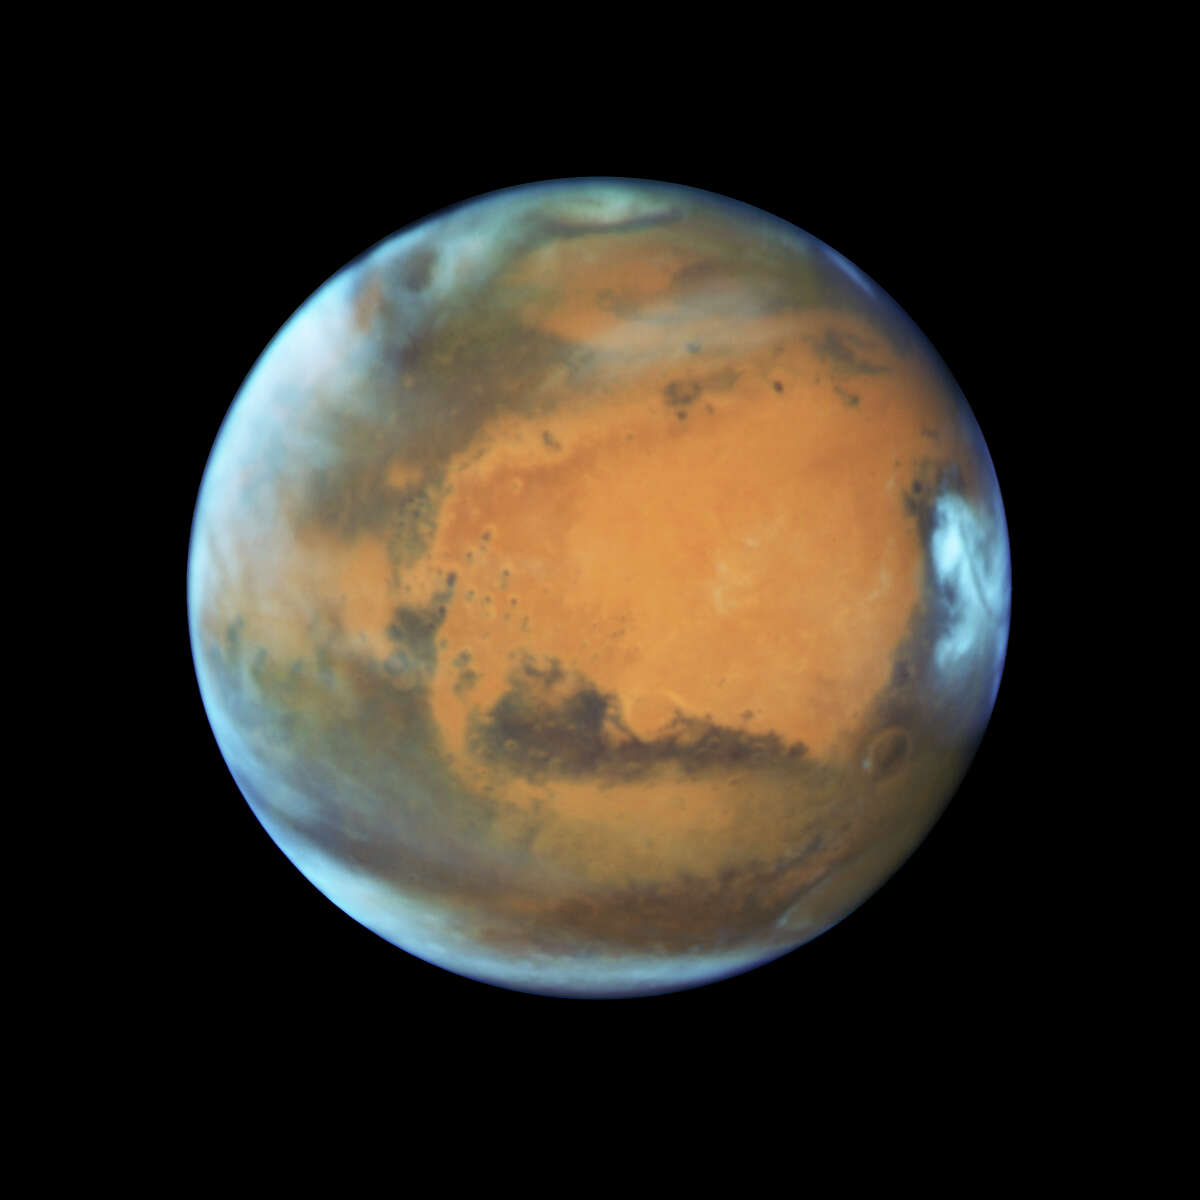 Scientists led by the University of Texas at Austin recently made a massive discovery of underground ice on Mars, which could be used as a water resource for future settlers. Click through to see amazing and trippy images of Mars' surface.